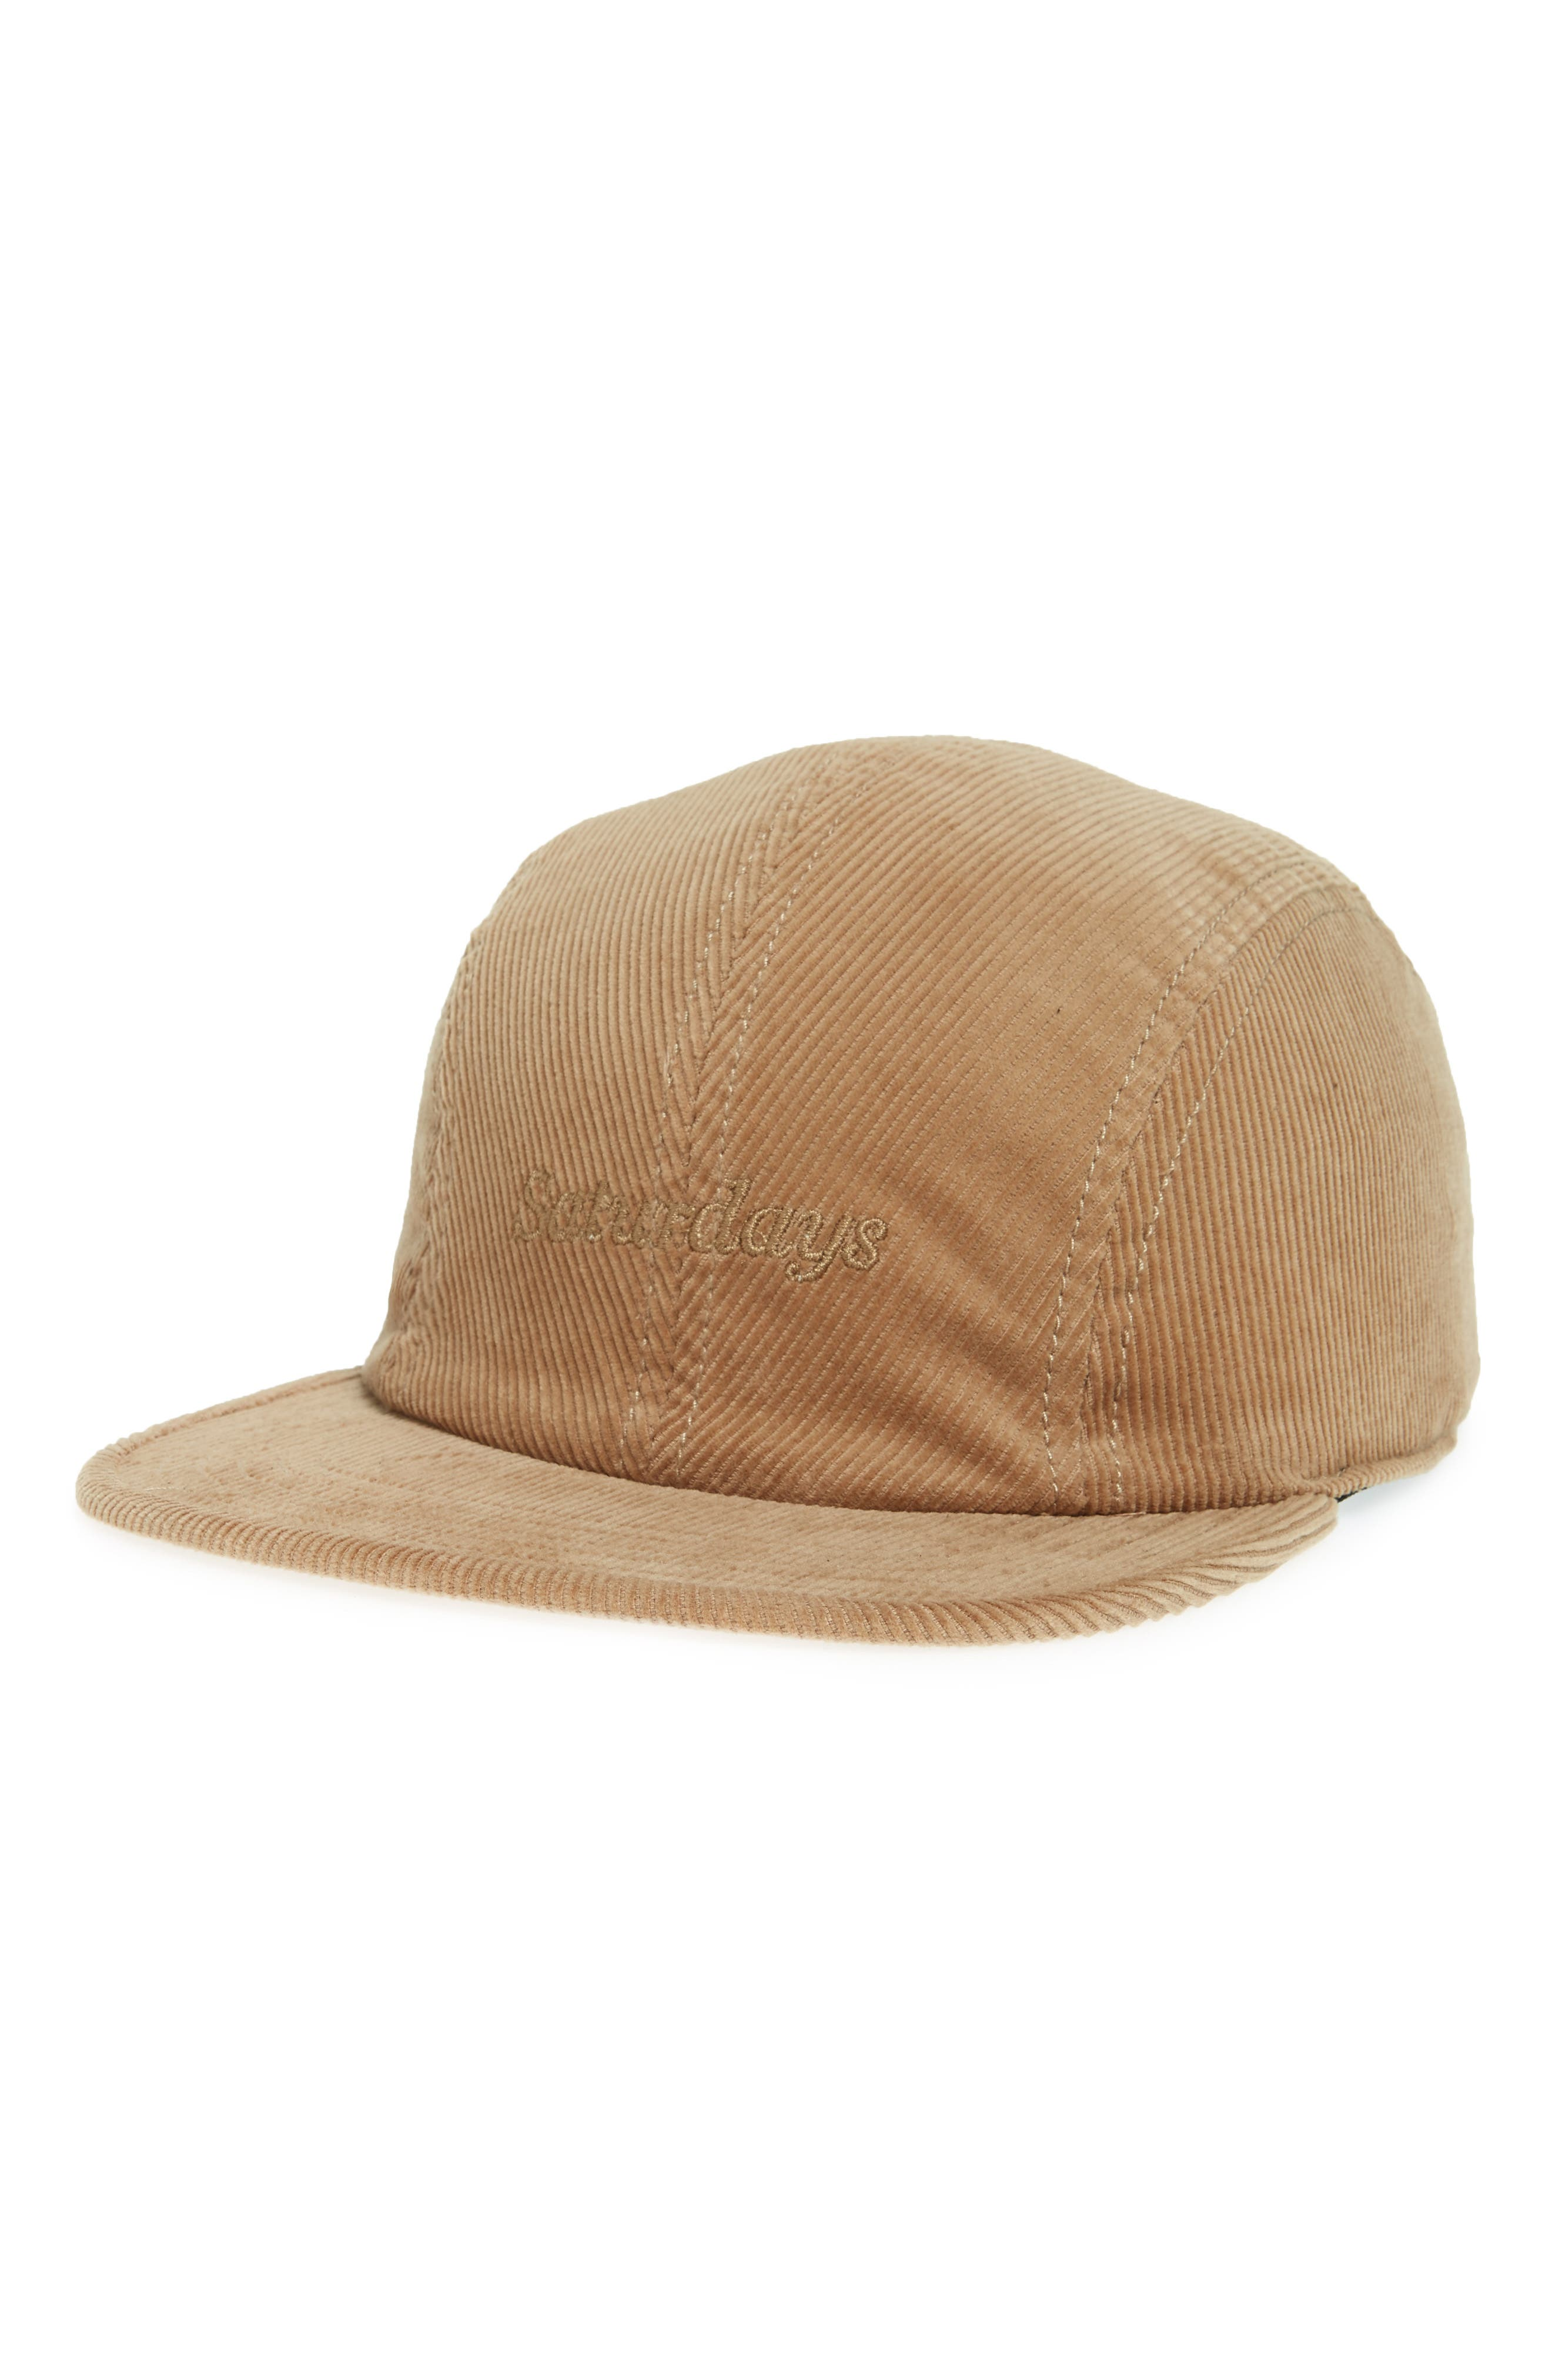 Russel Baseball Cap,                         Main,                         color, BRITISH KHAKI